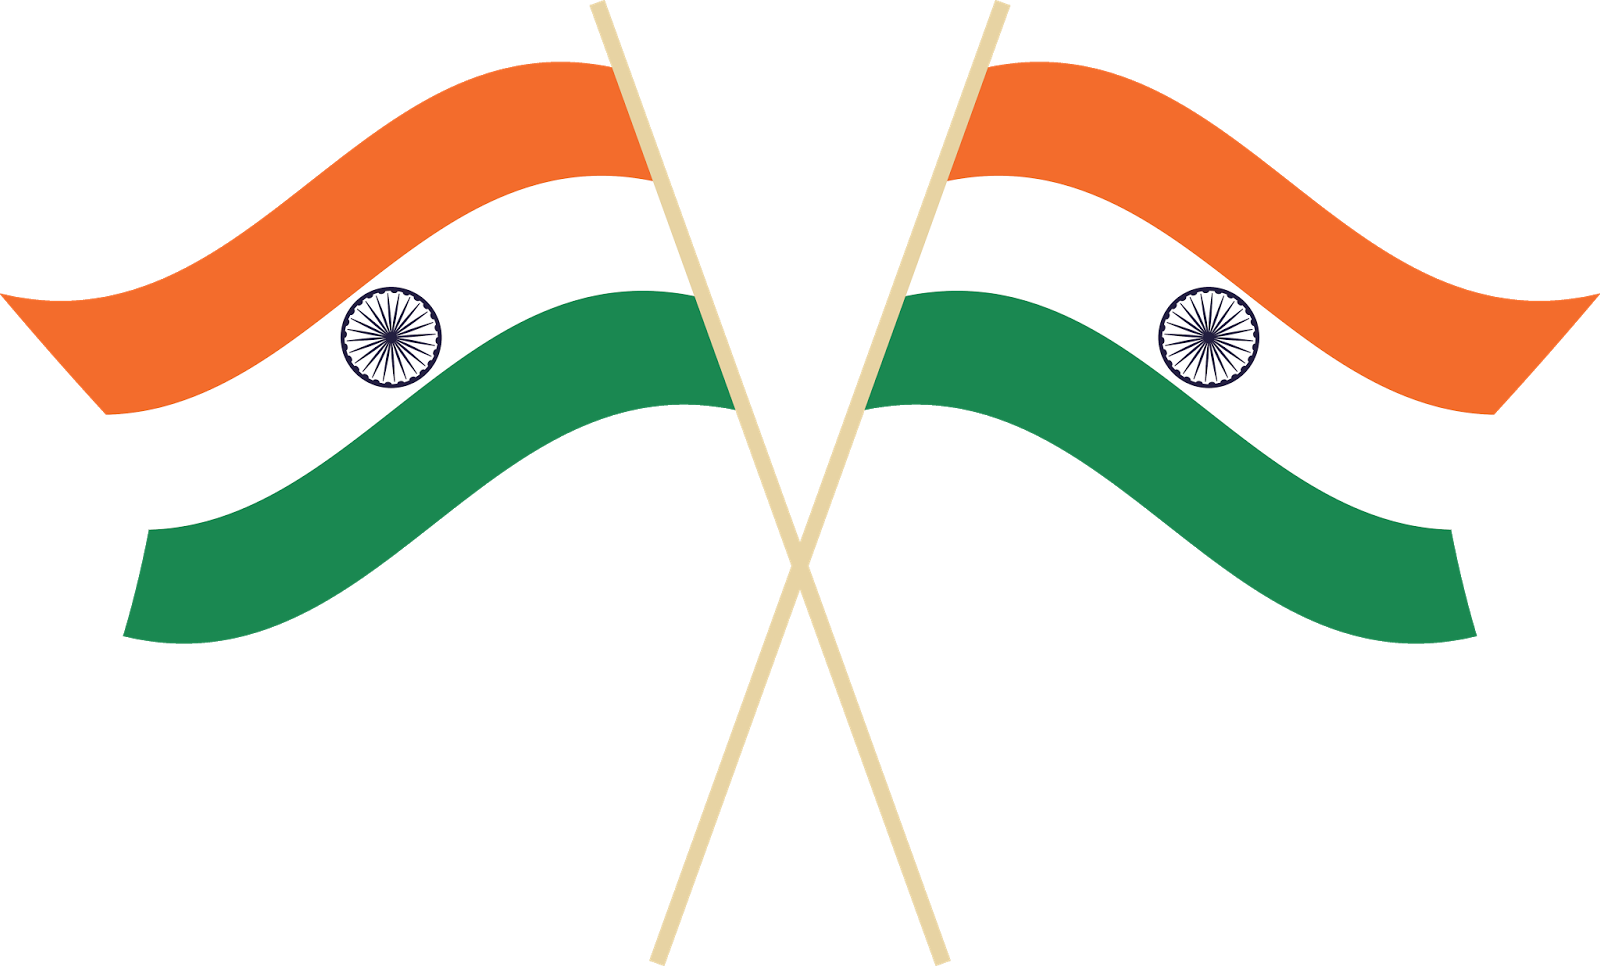 Drapeau India Pin By Maheshwar Singh On Maheshwar In 2019 Indian Flag Indian